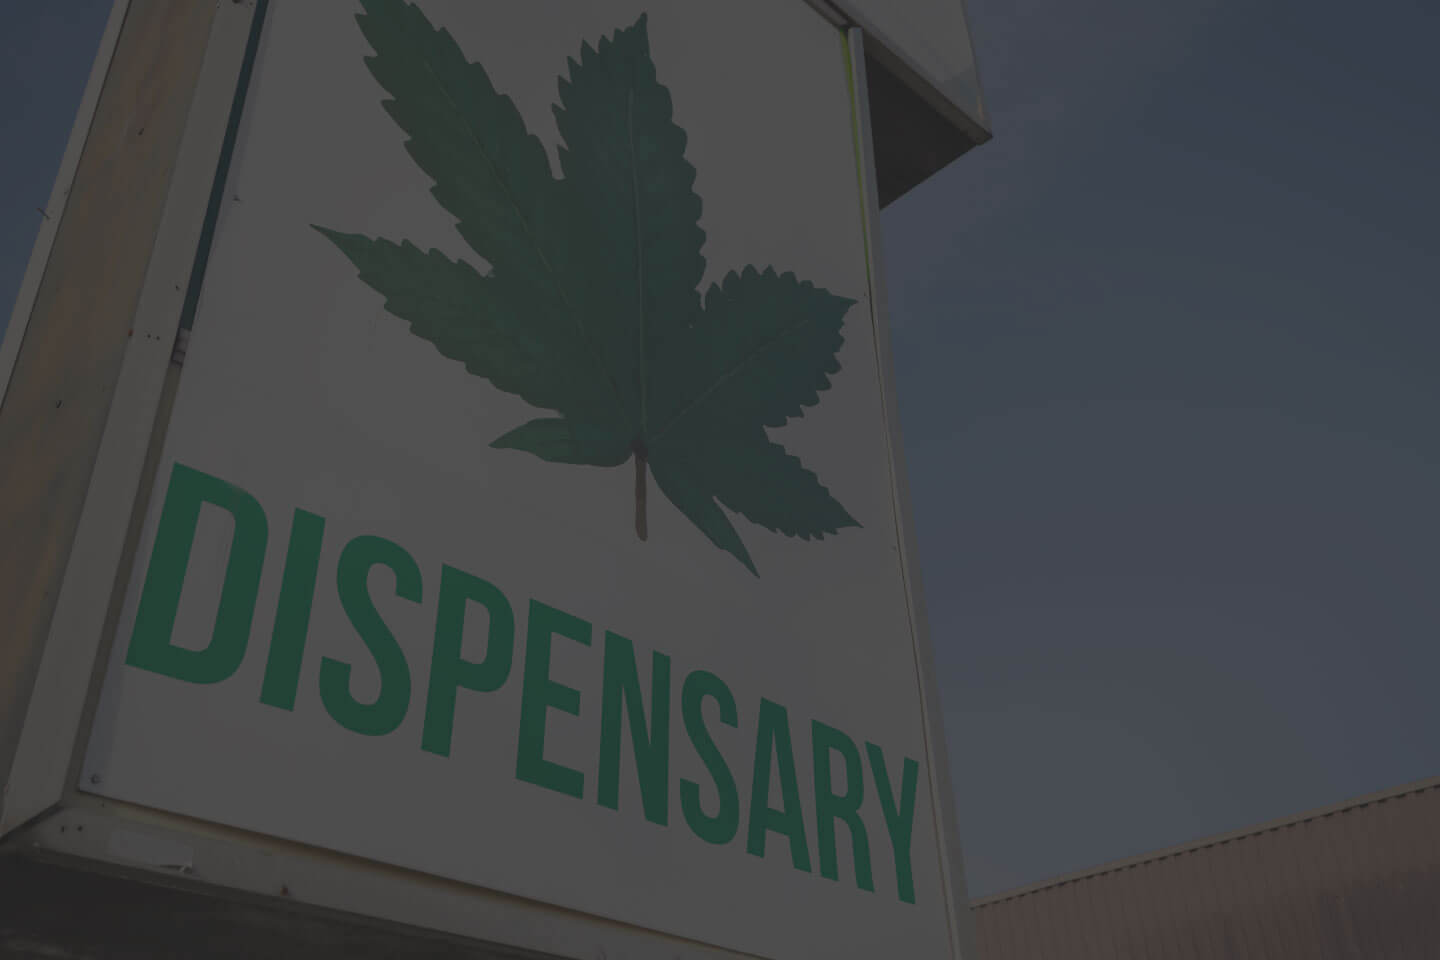 Dispensary Deals and Prices: How to Get the Best Value at the Dispensary